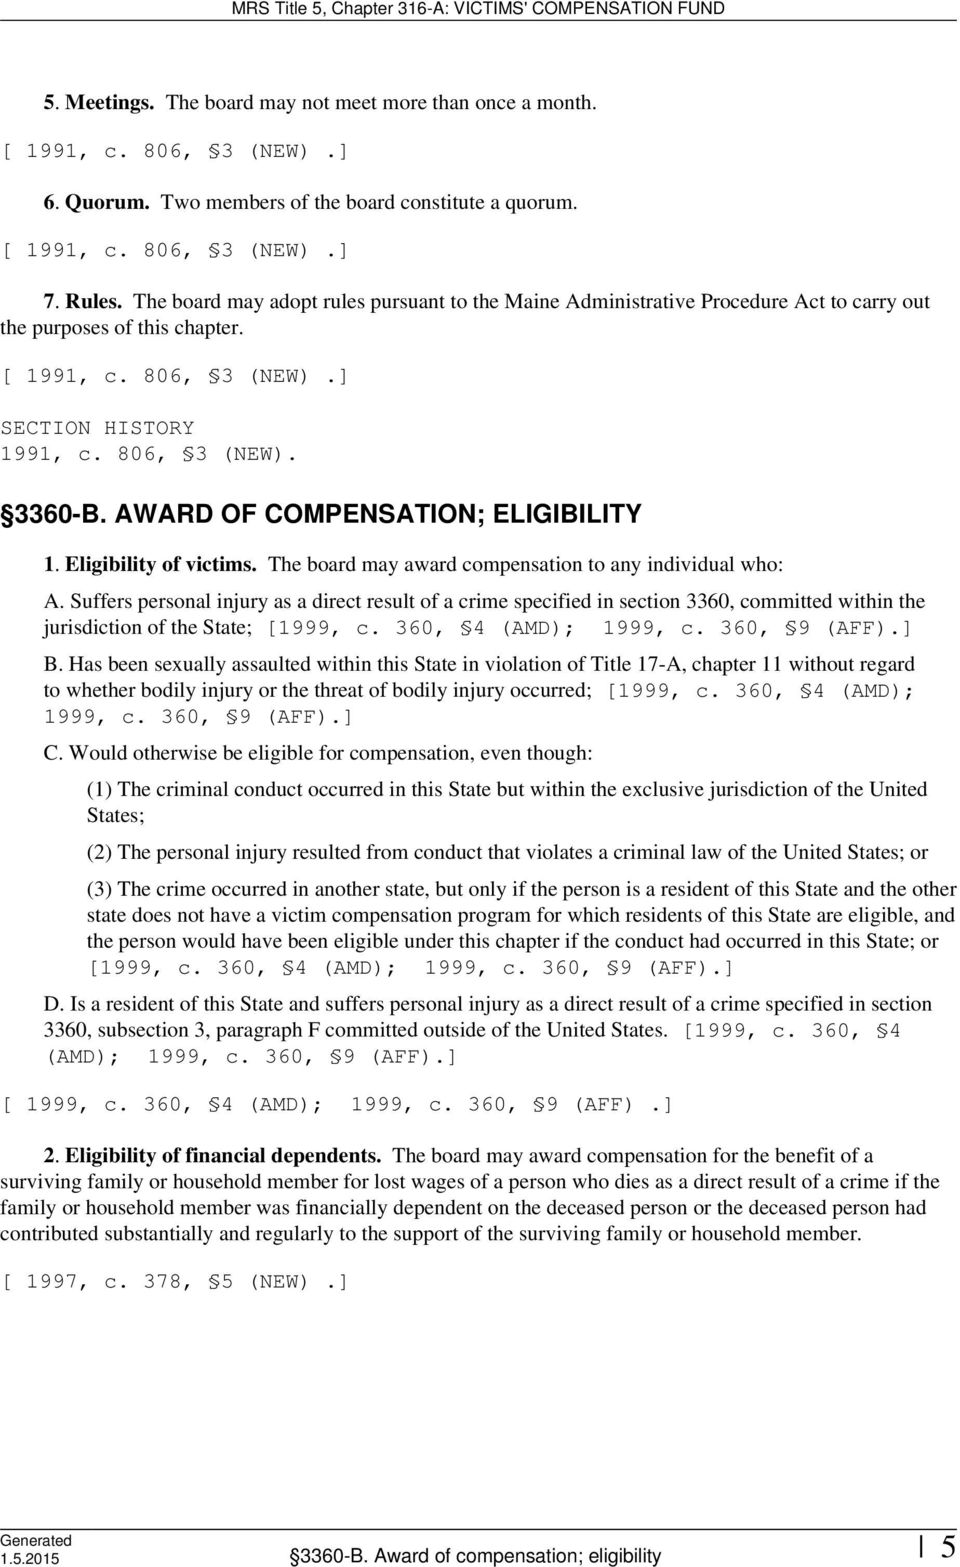 Eligibility of victims. The board may award compensation to any individual who: A.